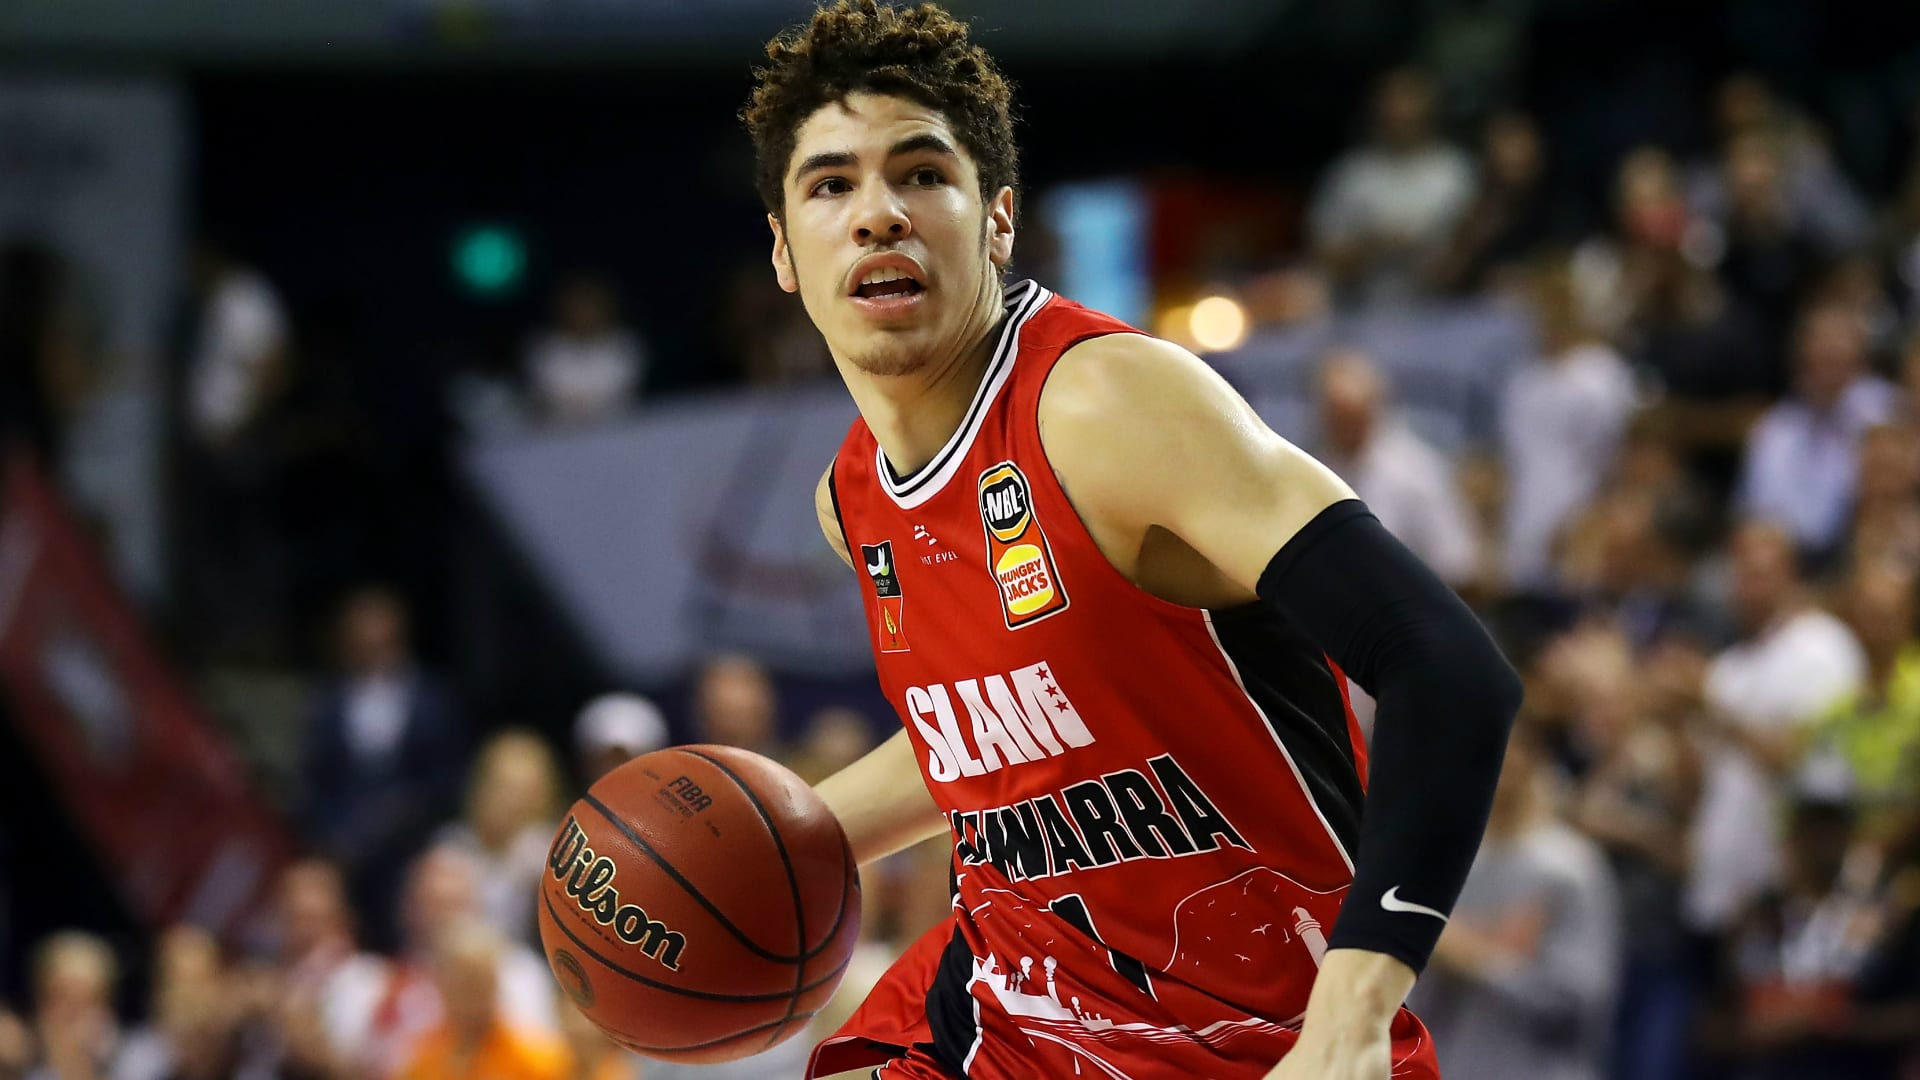 Sale of Australian NBL Team to LaMelo Ball and Manager Not a Done Deal